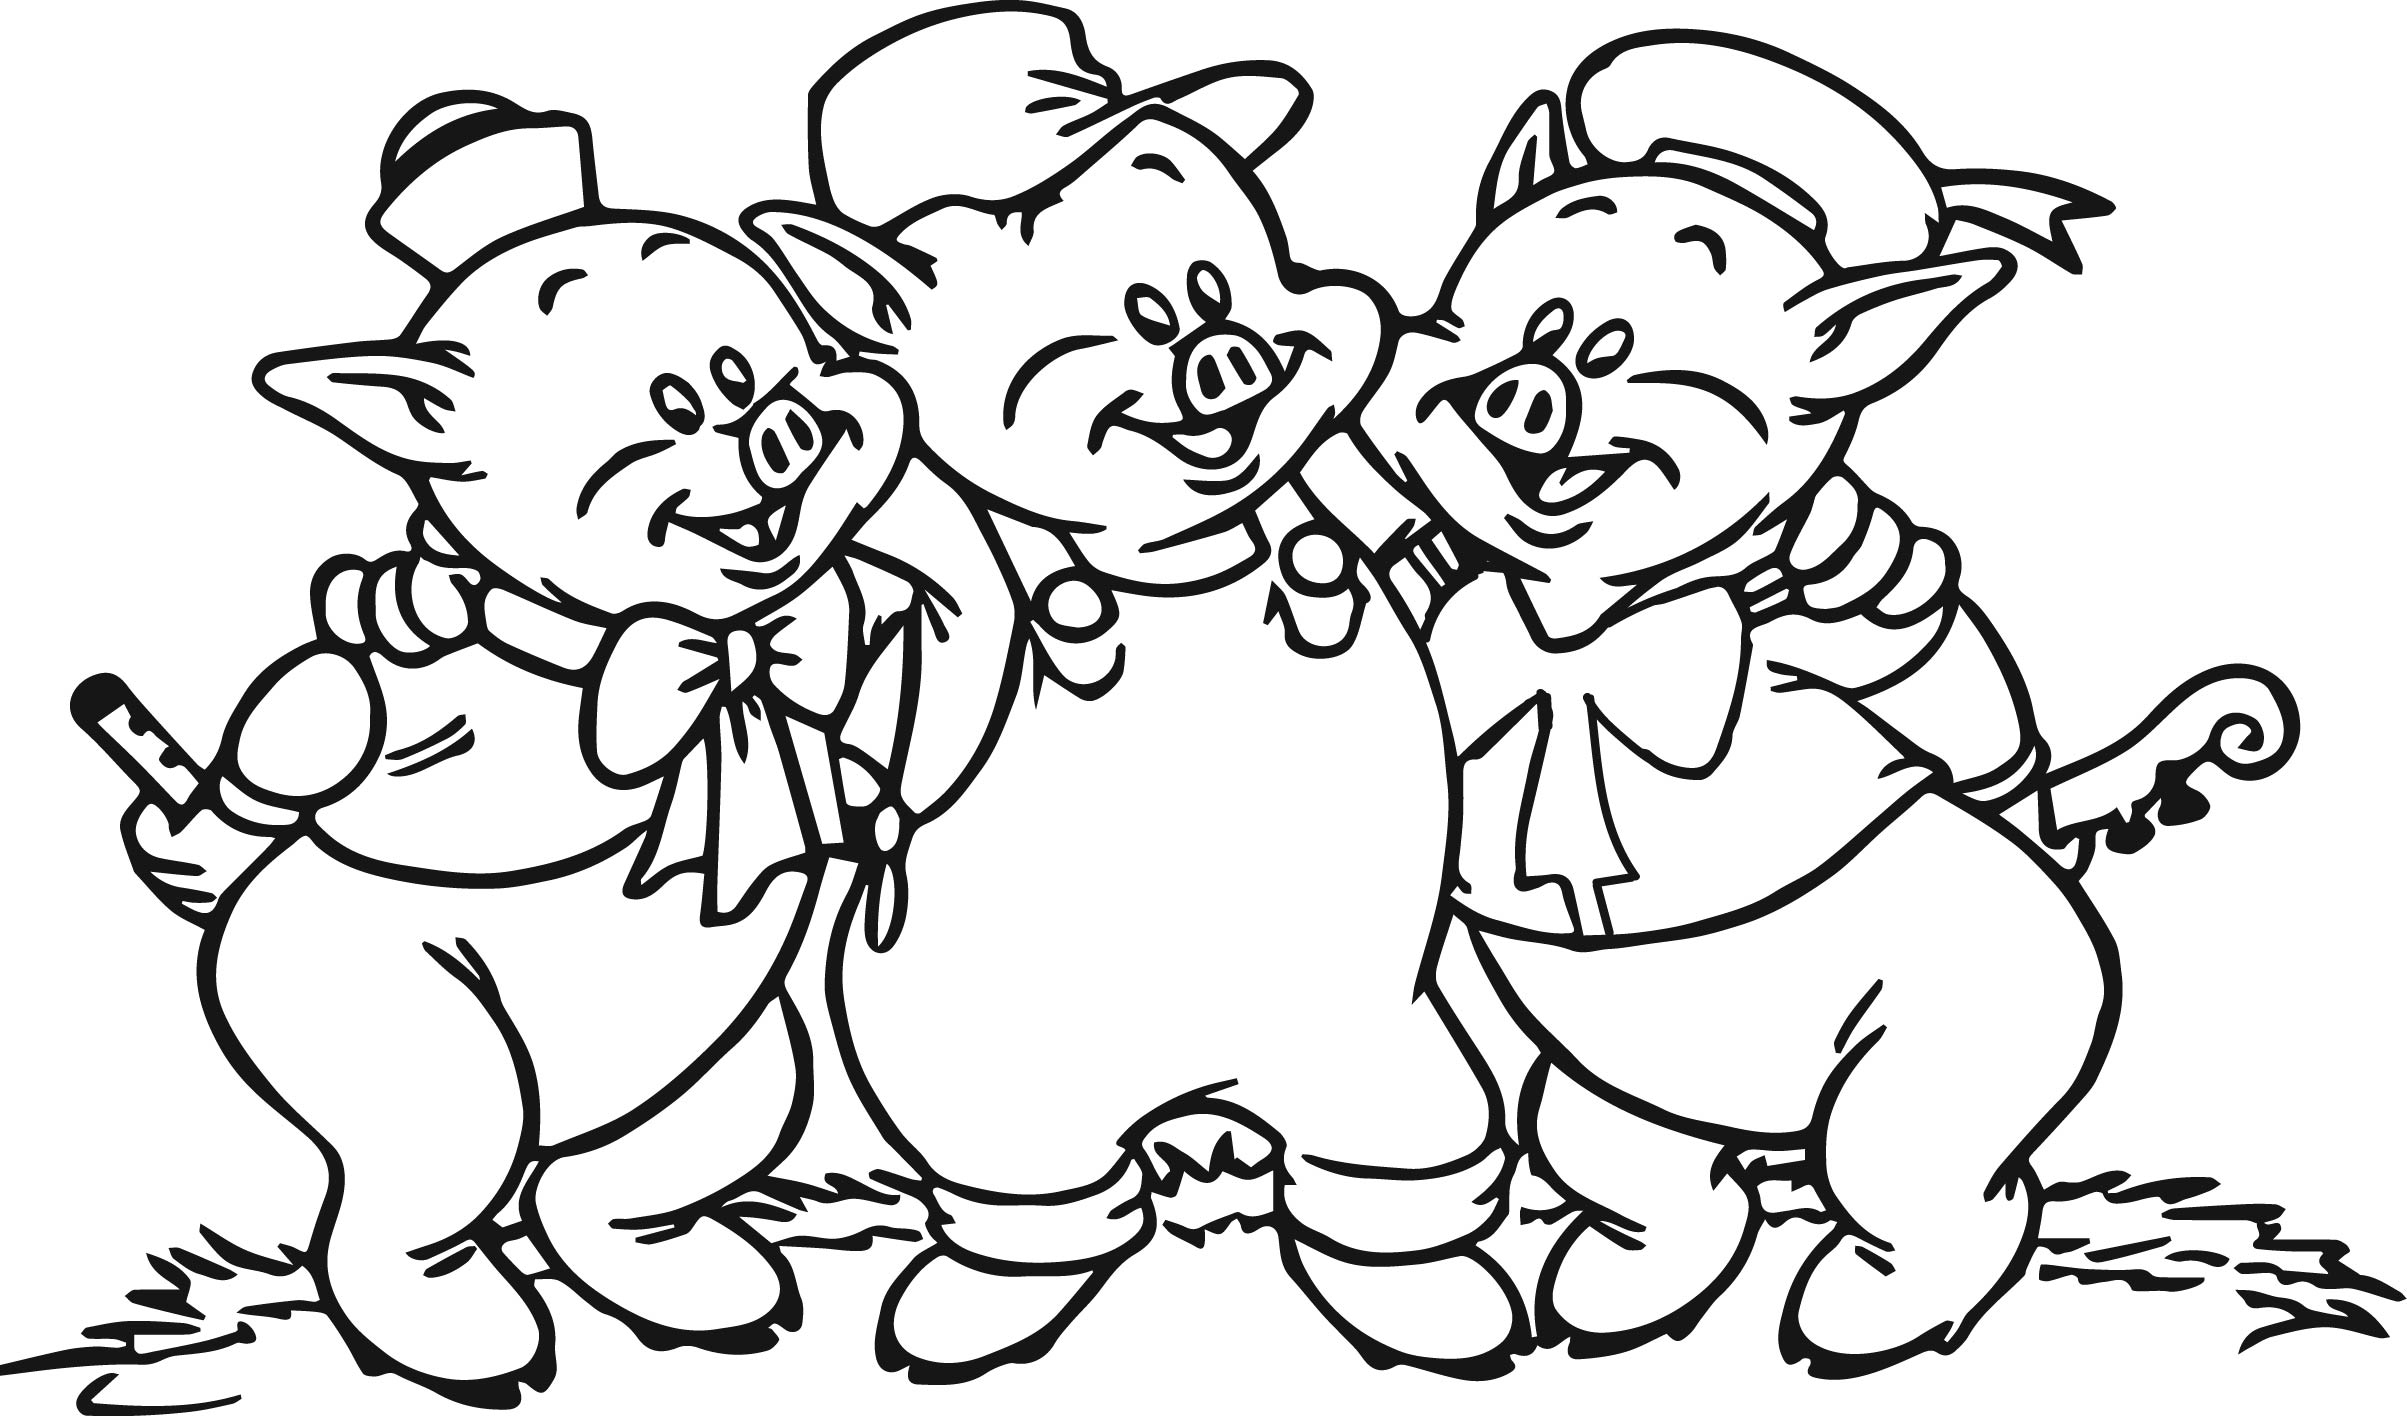 coloring pages of pigs and piglets - 3 little pigs coloring page